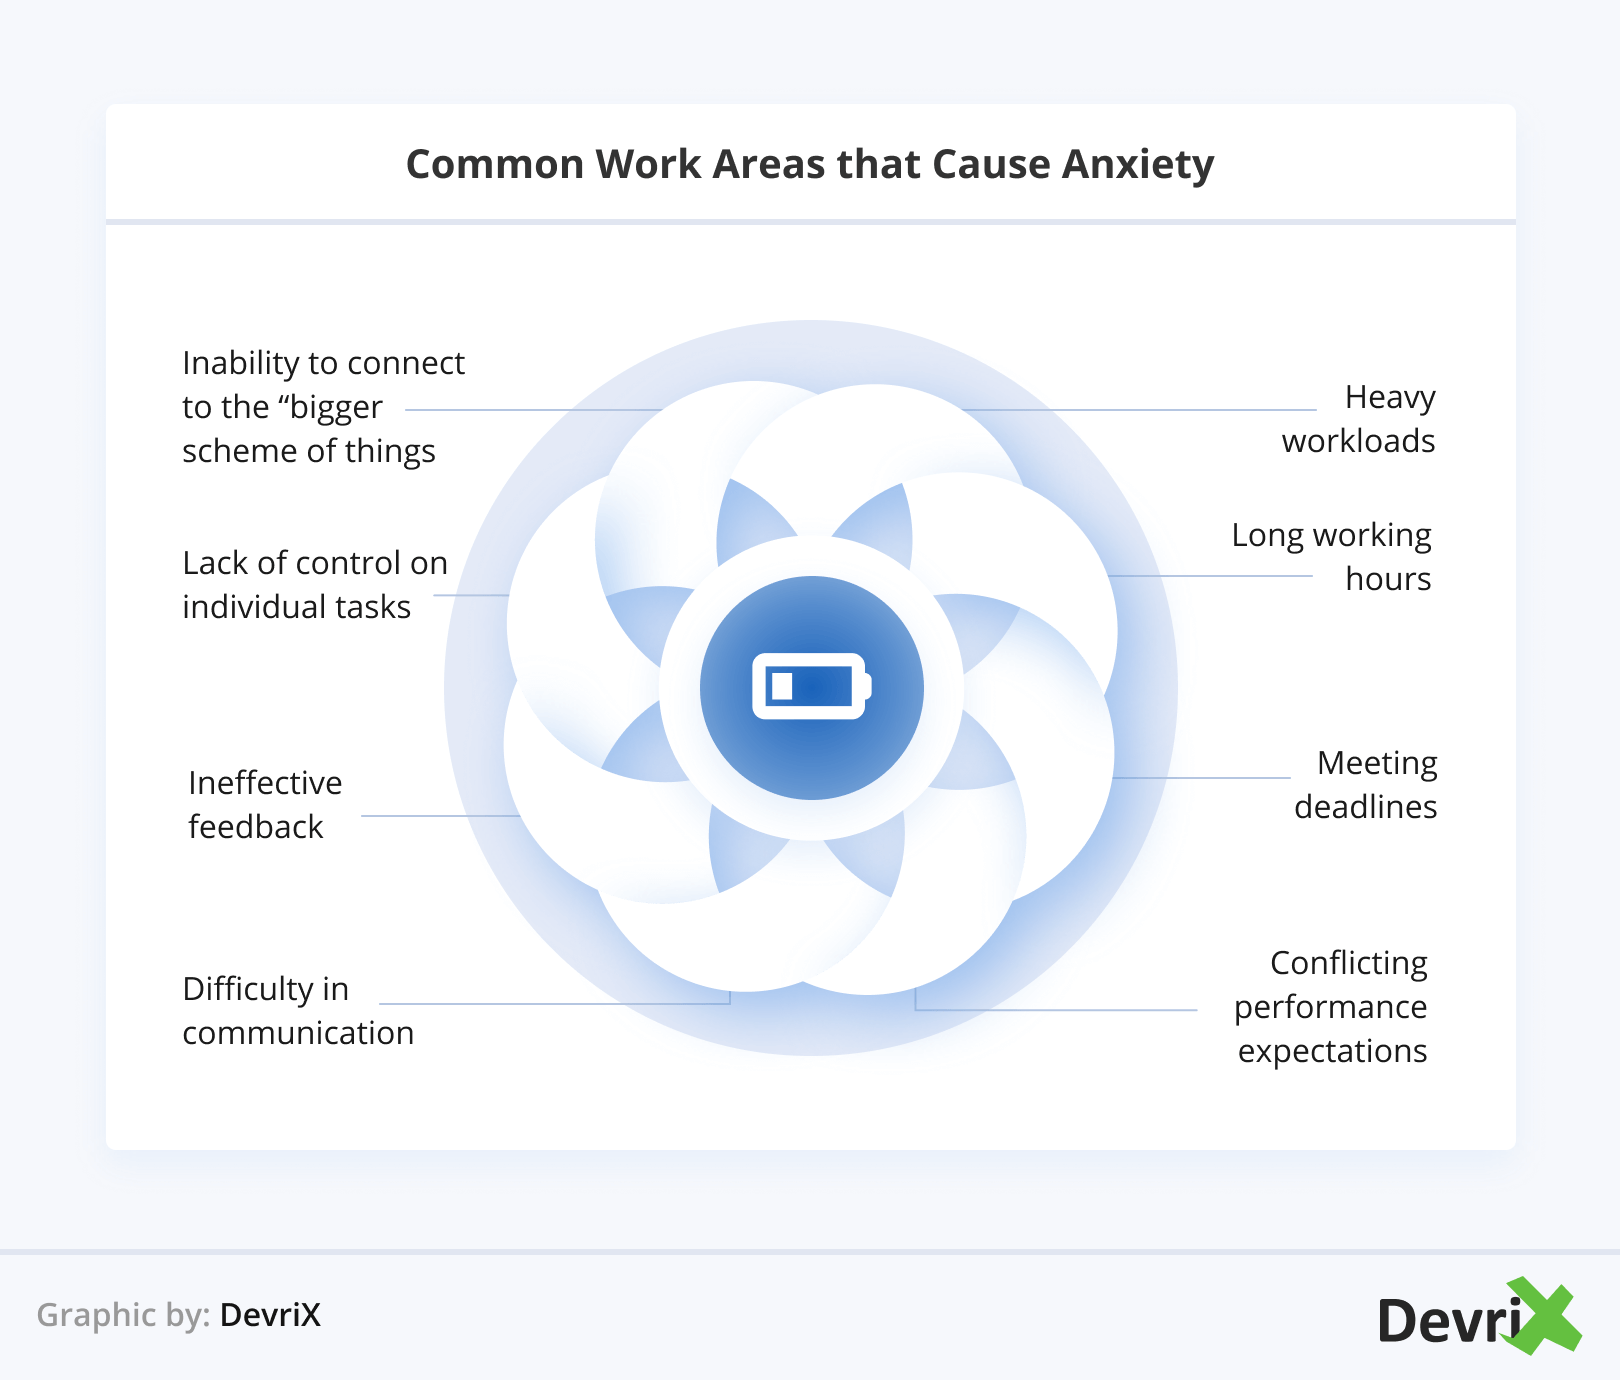 Common Work Areas that Cause Anxiety